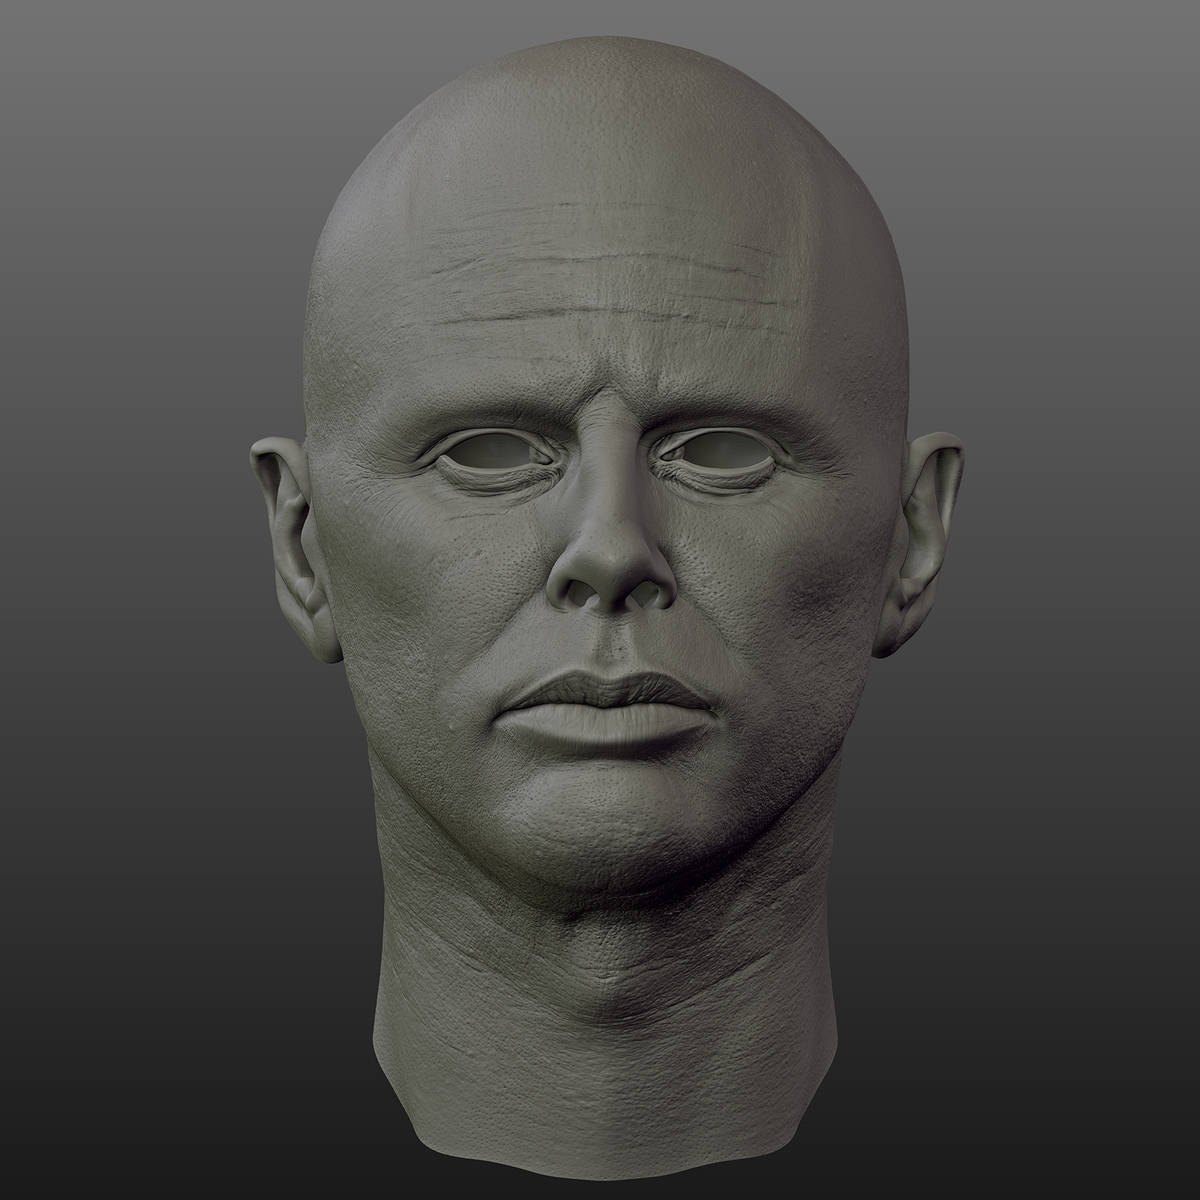 ZBrush Document03